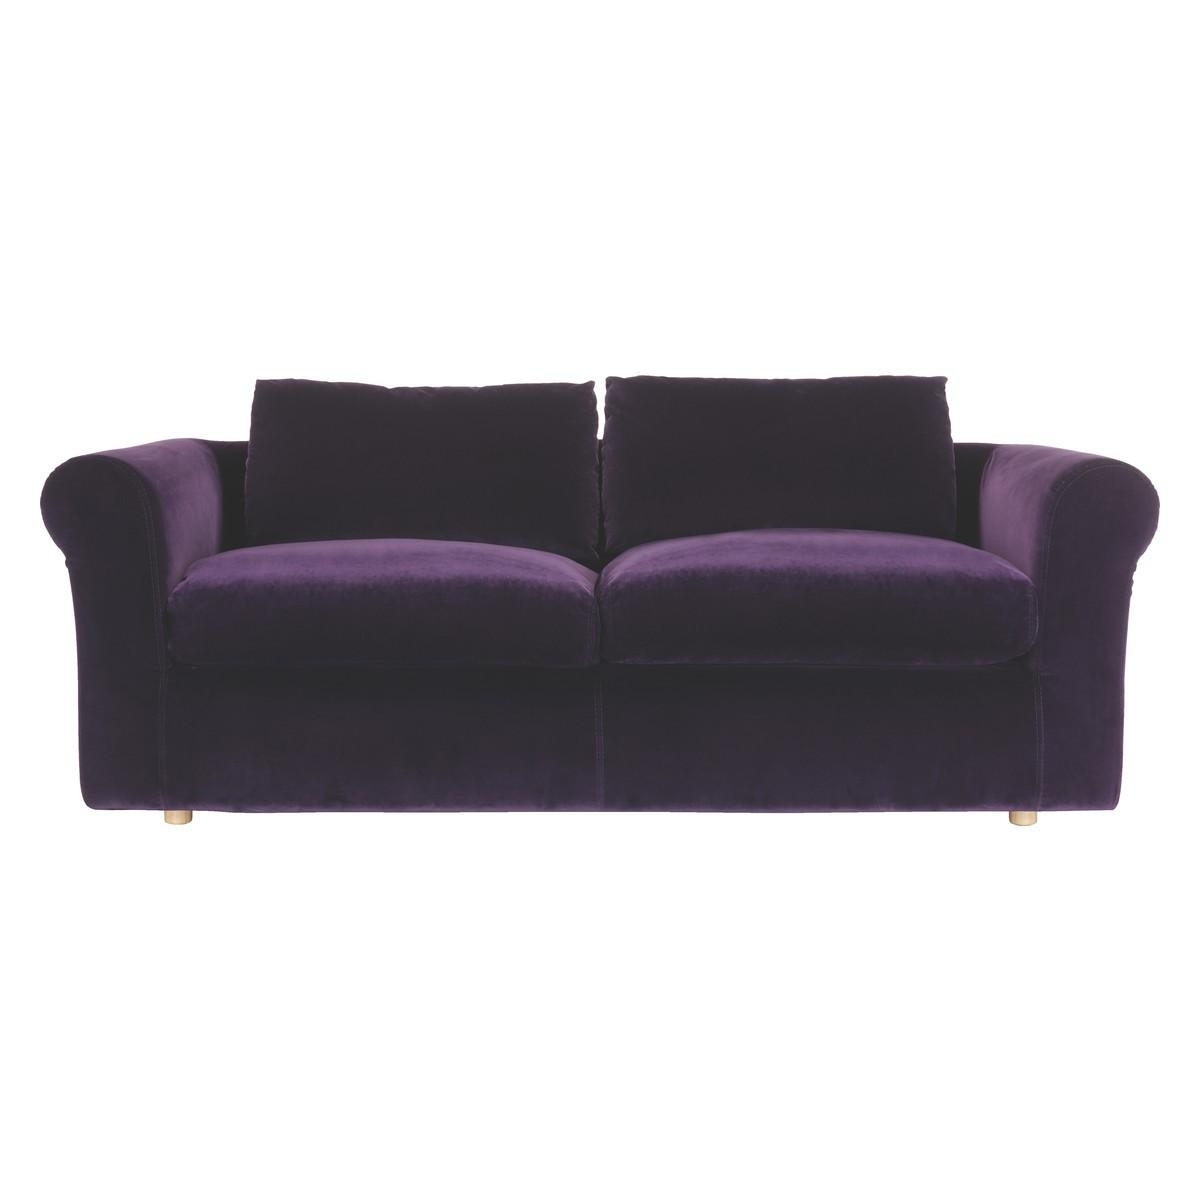 purple velvet upholstered sofa 2 places 20 inspirations sofas ideas